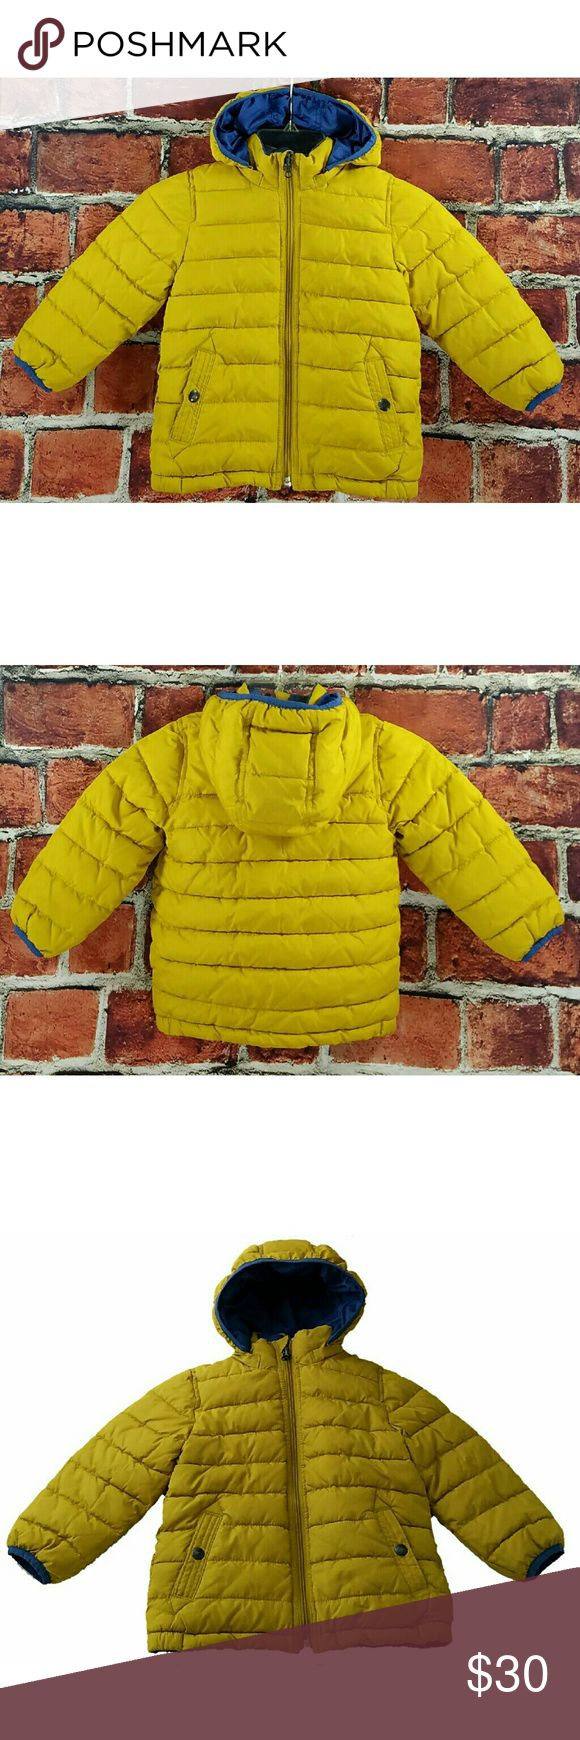 Baby Gap Boys Reversible Puffer 3T Baby Gap Toddler Boys Yellow & Blue Reversible Hooded Winter Puffer Jacket Coat Size 3T EUC   Description:  Toddler Boys  Size 3T  Mustard Yellow & Medium Blue  Reversible Jacket  Insulated  Removable Hood  Excellent Used Condition   There are no Visible Tears, Rips or Stains  HOWEVER, there is writing on the blue tag on the yellow side of the jacket, which is under the hood and doesn't show. baby gap Jackets & Coats Puffers